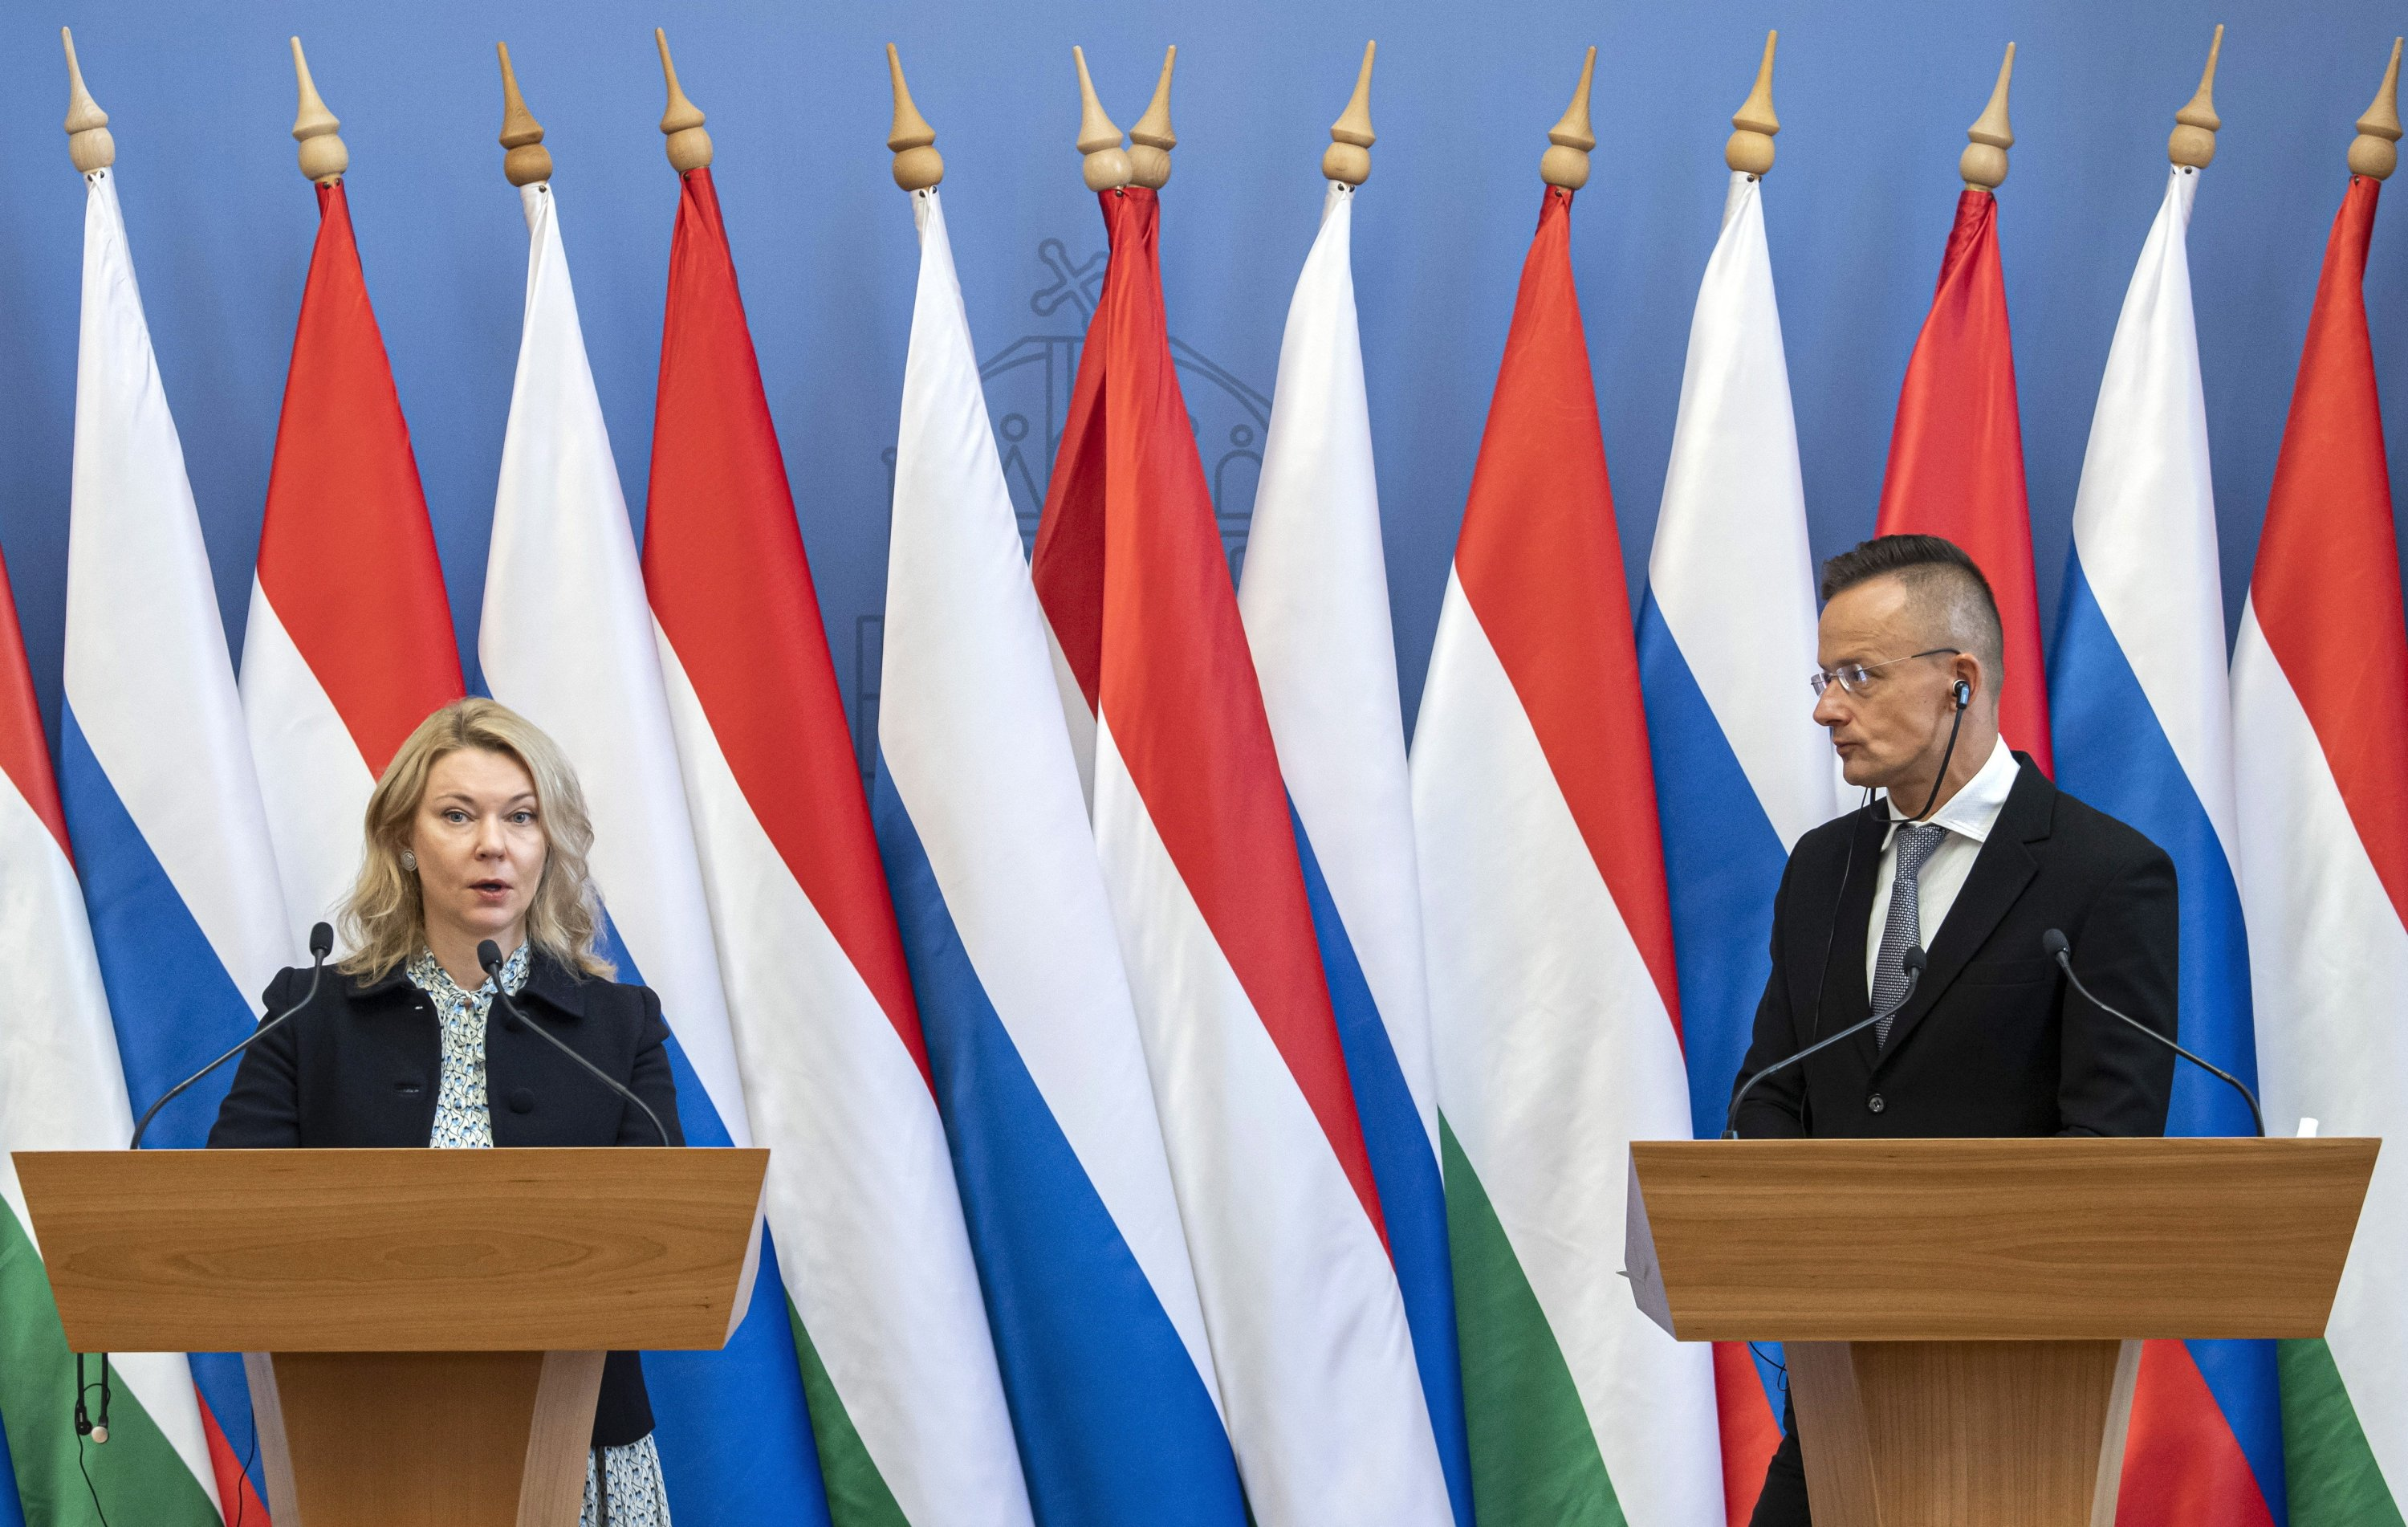 Hungarian Foreign Minister Peter Szijjarto (R) and Gazprom Deputy Chairperson Elena Burmistrova hold a joint press conference after signing a long-term gas purchase agreement in Budapest, Hungary, Sept. 27, 2021. (EPA Photo)